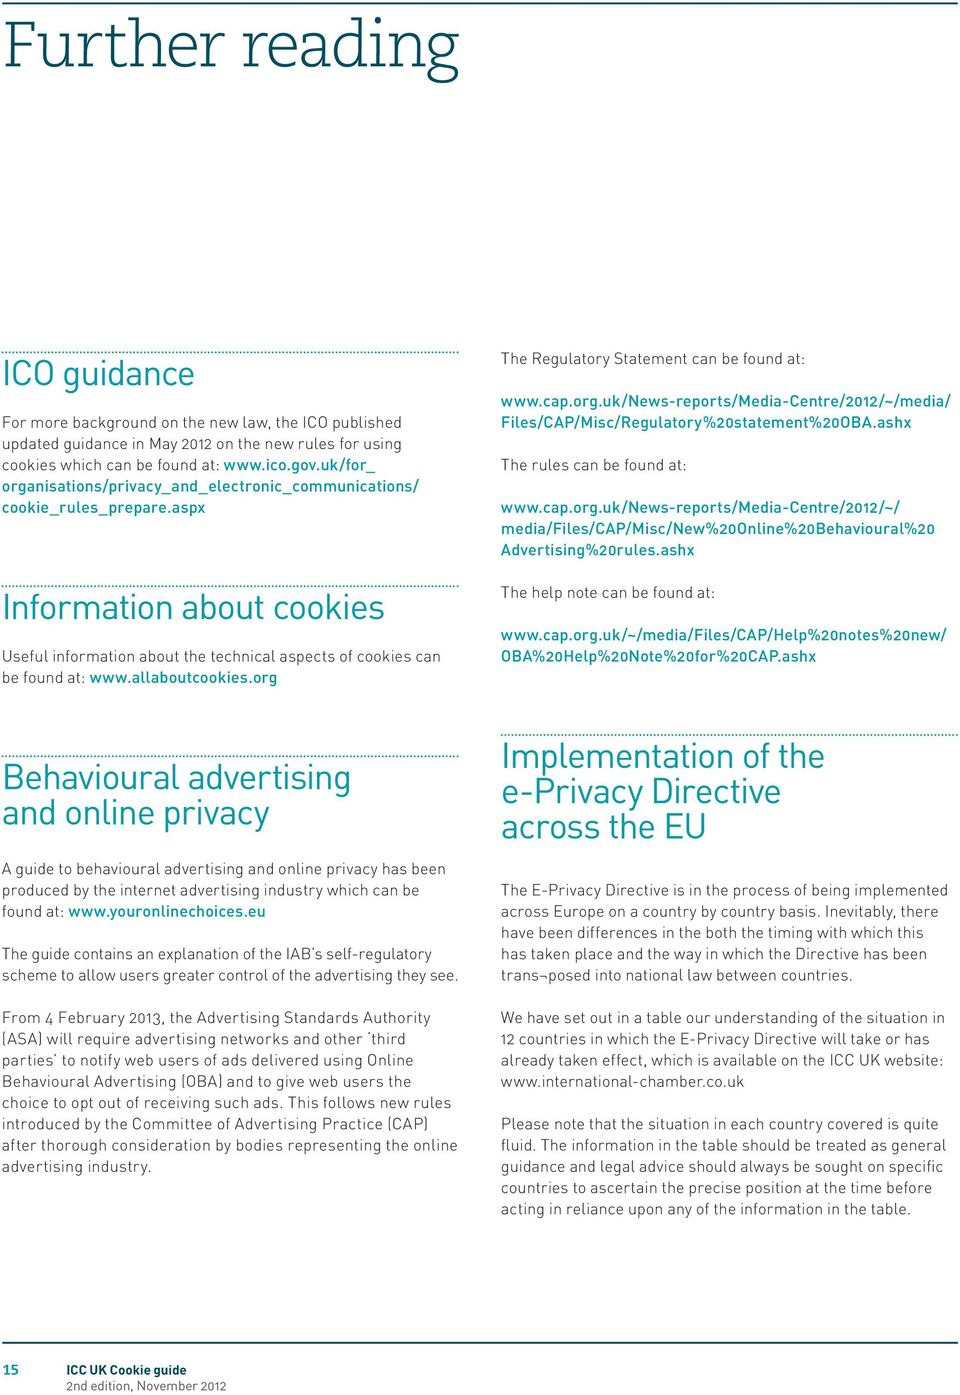 allaboutcookies.org Behavioural advertising and online privacy A guide to behavioural advertising and online privacy has been produced by the internet advertising industry which can be found at: www.